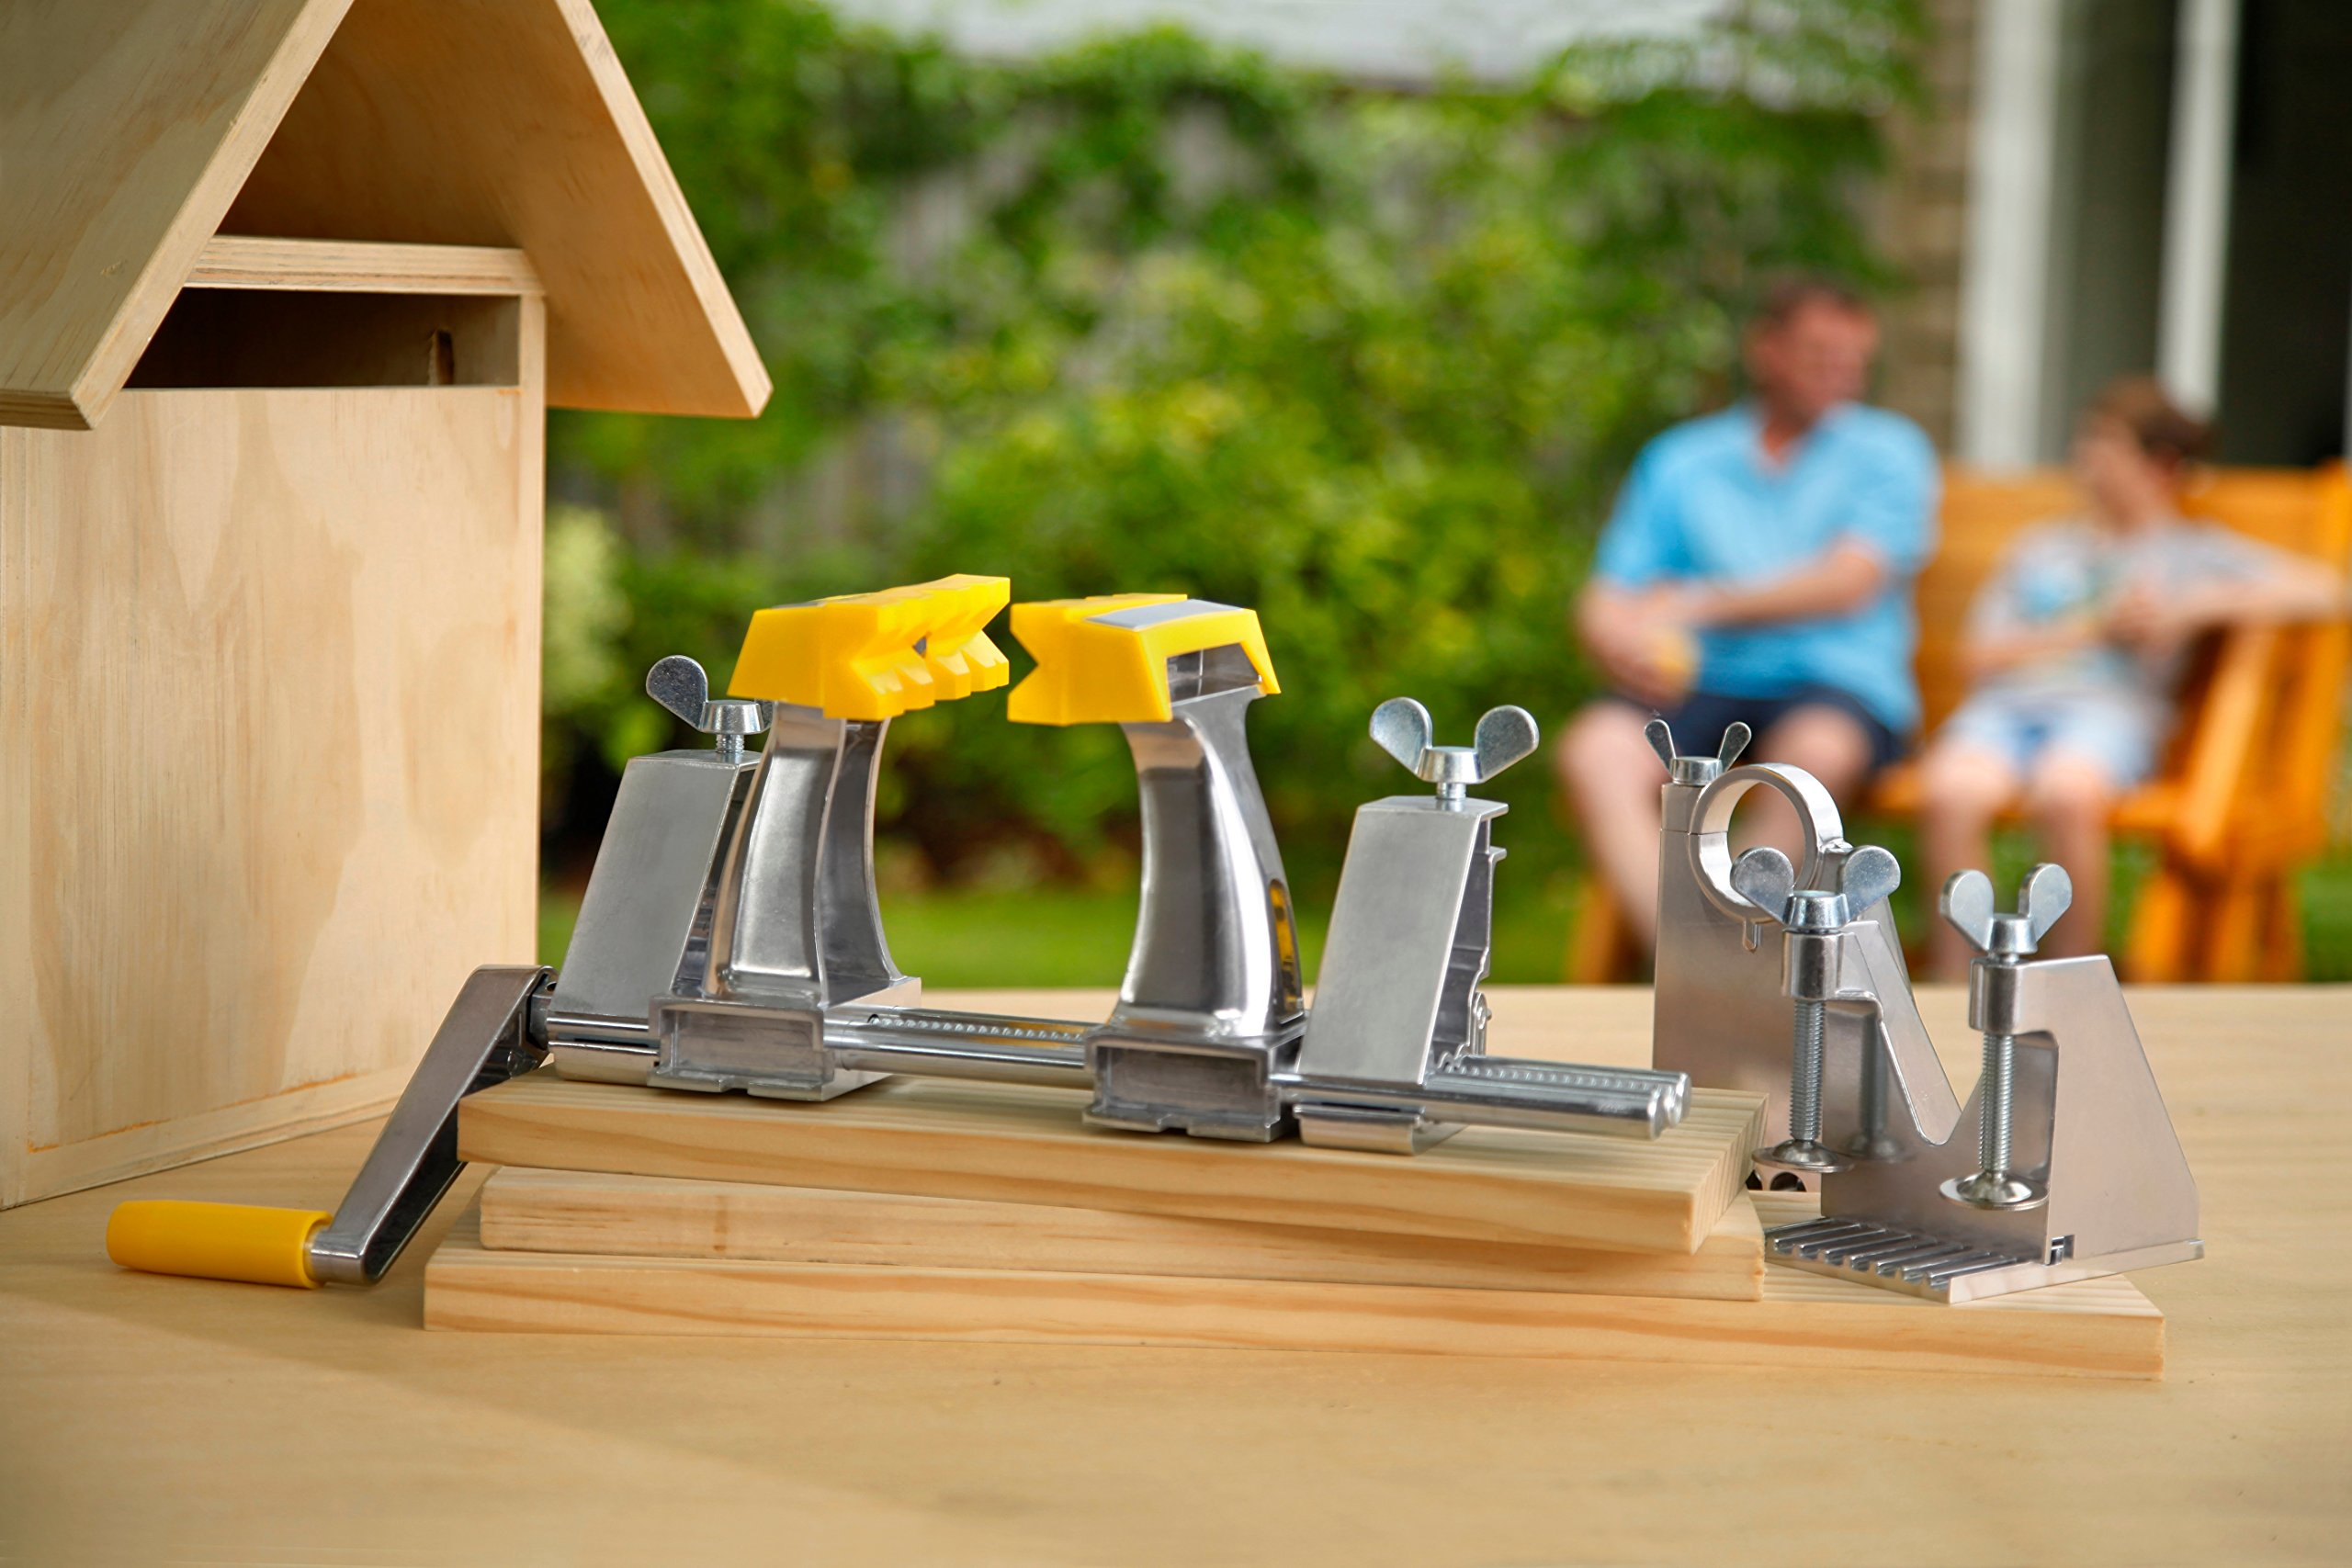 Extra Pair of Hands by Renovator - The World's Most Versatile, Portable, Patented Clamping System That Holds Your Work, So You Can Do Your Work by Renovator (Image #4)